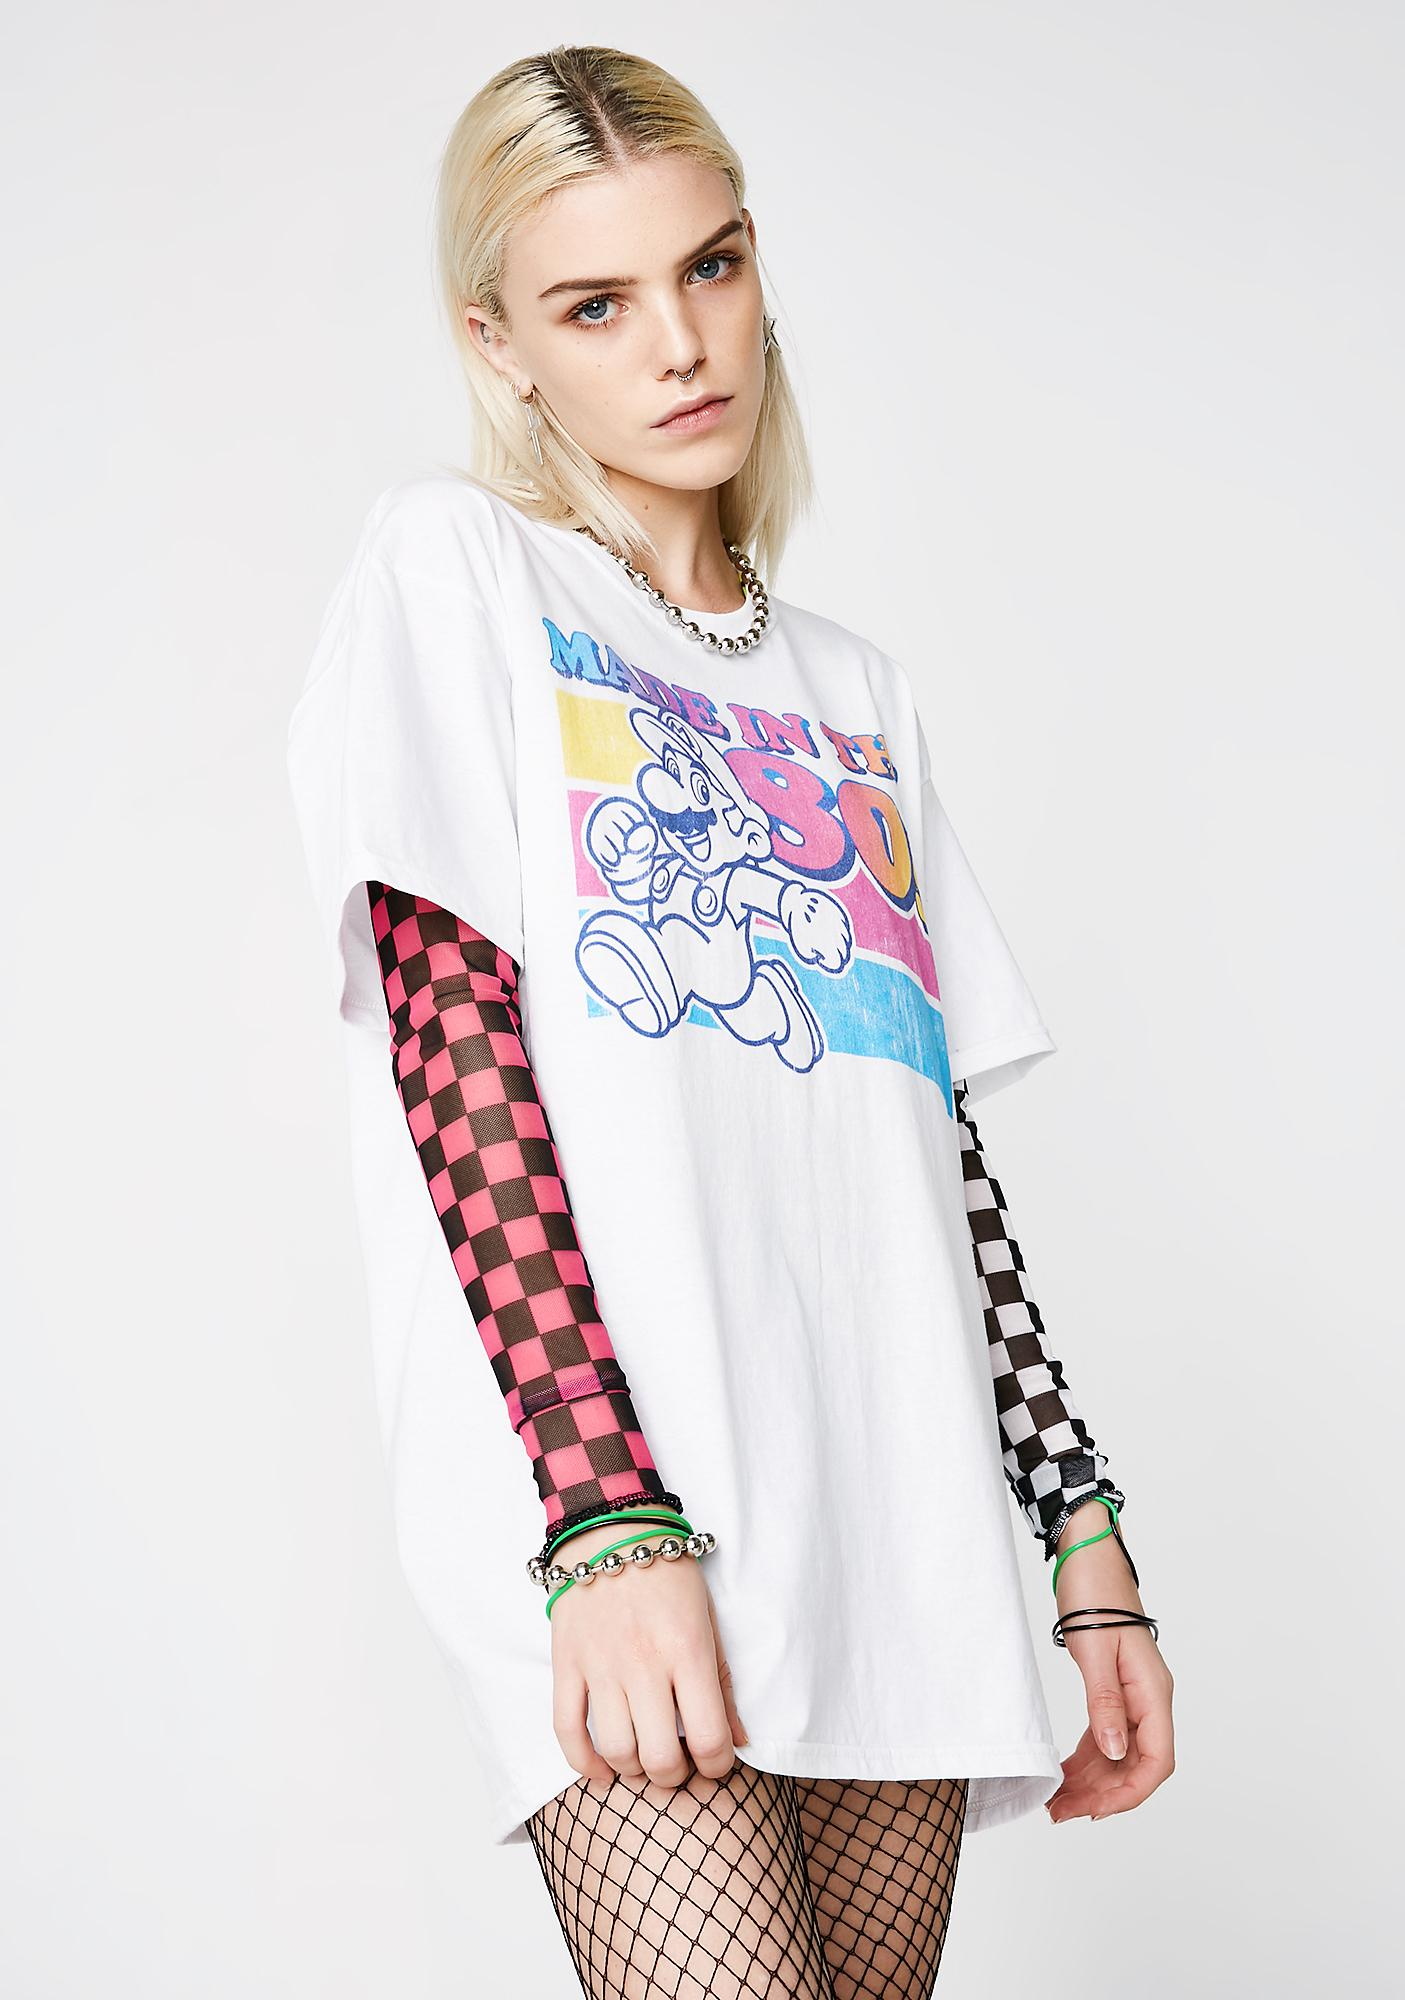 Totally Radical Graphic Tee